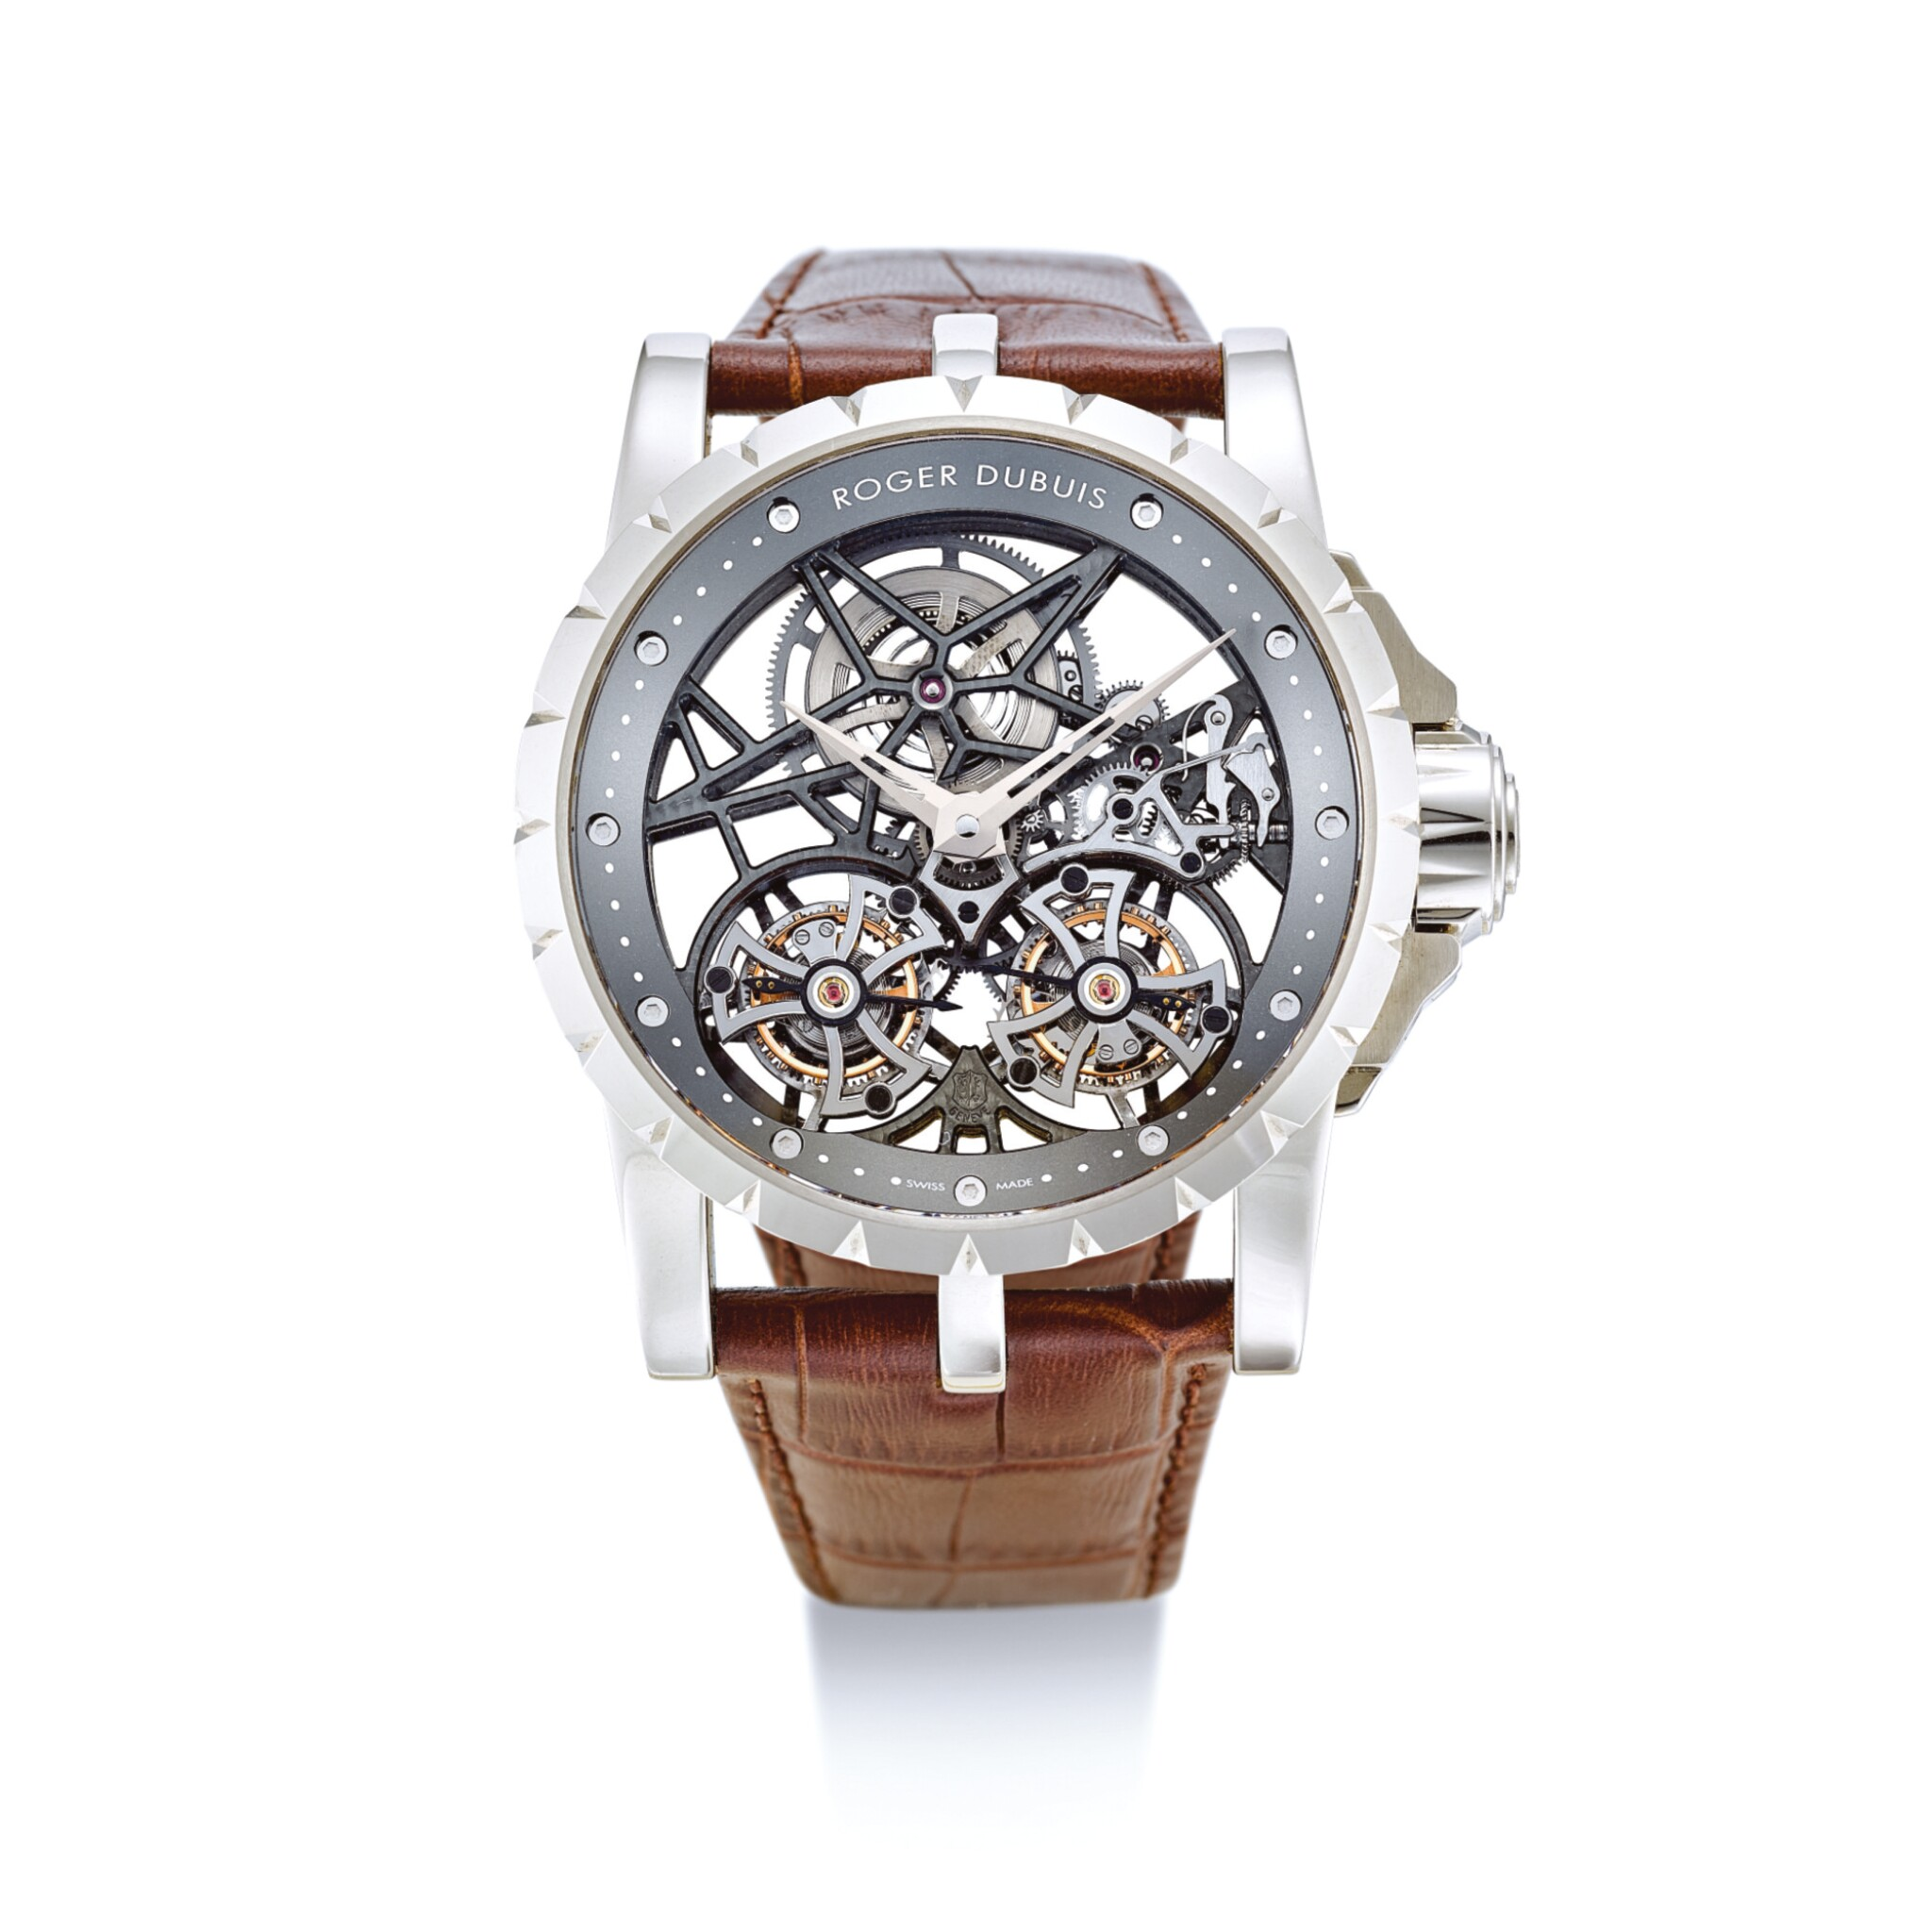 """View full screen - View 1 of Lot 2021. ROGER DUBUIS     EXCALIBUR, REFERENCE RDDBEX0396  A LIMITED EDITION WHITE GOLD DOUBLE FLYING TOURBILLON SKELETONISED WRISTWATCH, CIRCA 2015   羅杰杜彼    """"Excalibur 型號RDDBEX0396  限量版白金雙重飛行陀飛輪鏤空腕錶,錶殼編號85780及57/88,約2015年製""""."""